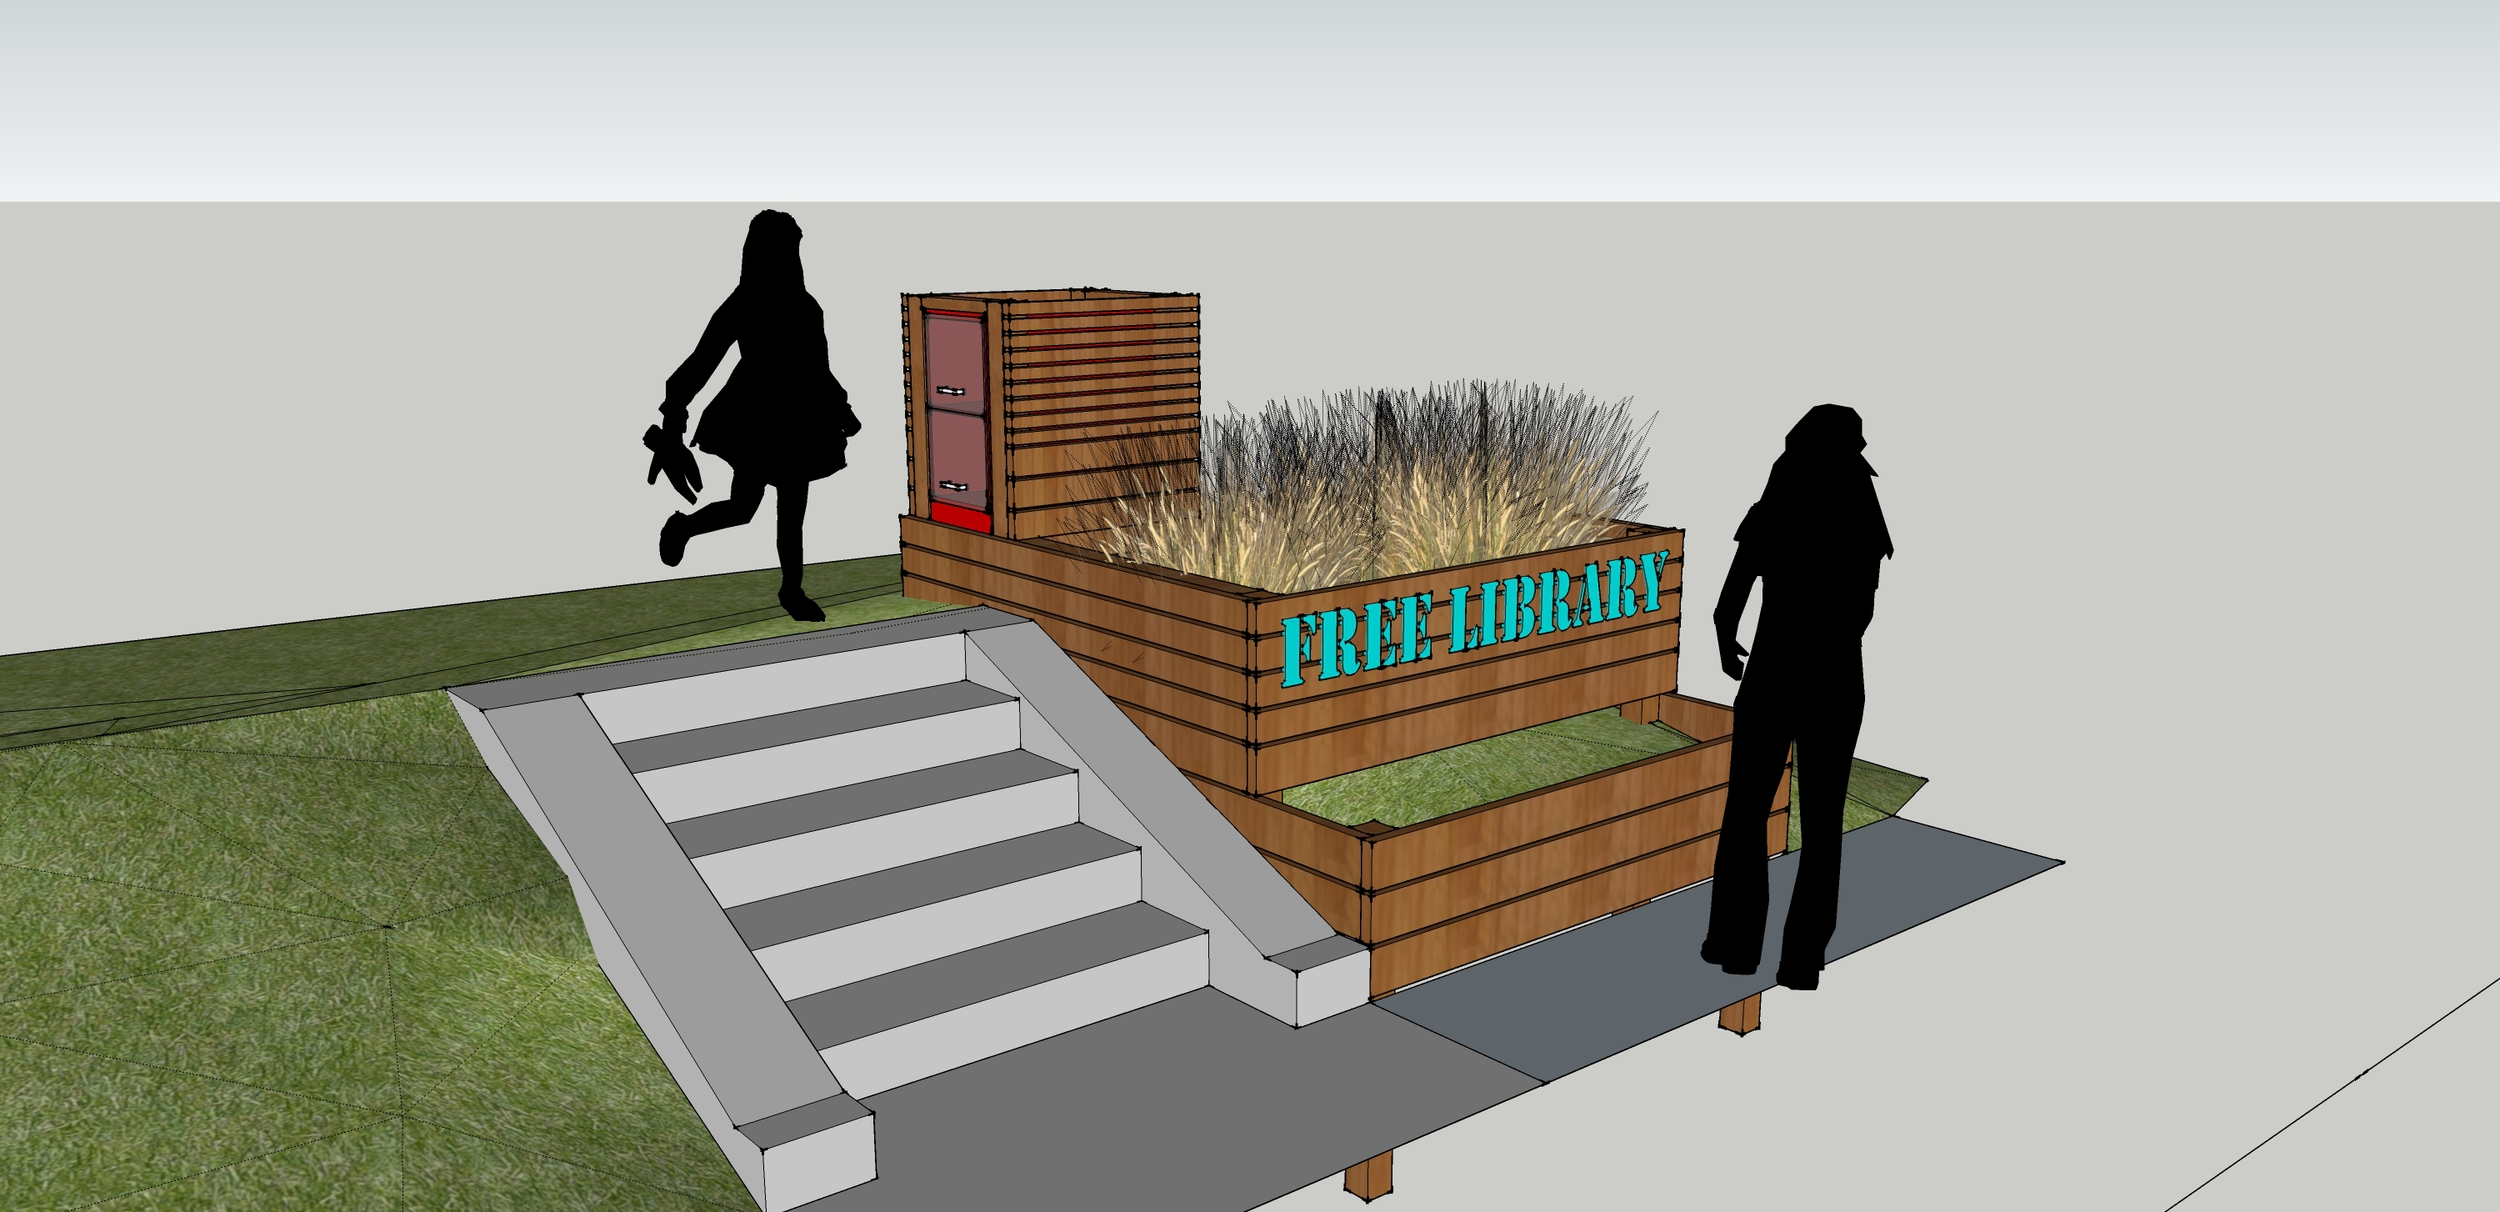 A quick modeling exercise to see how our proposed little free library could fit onto the site.